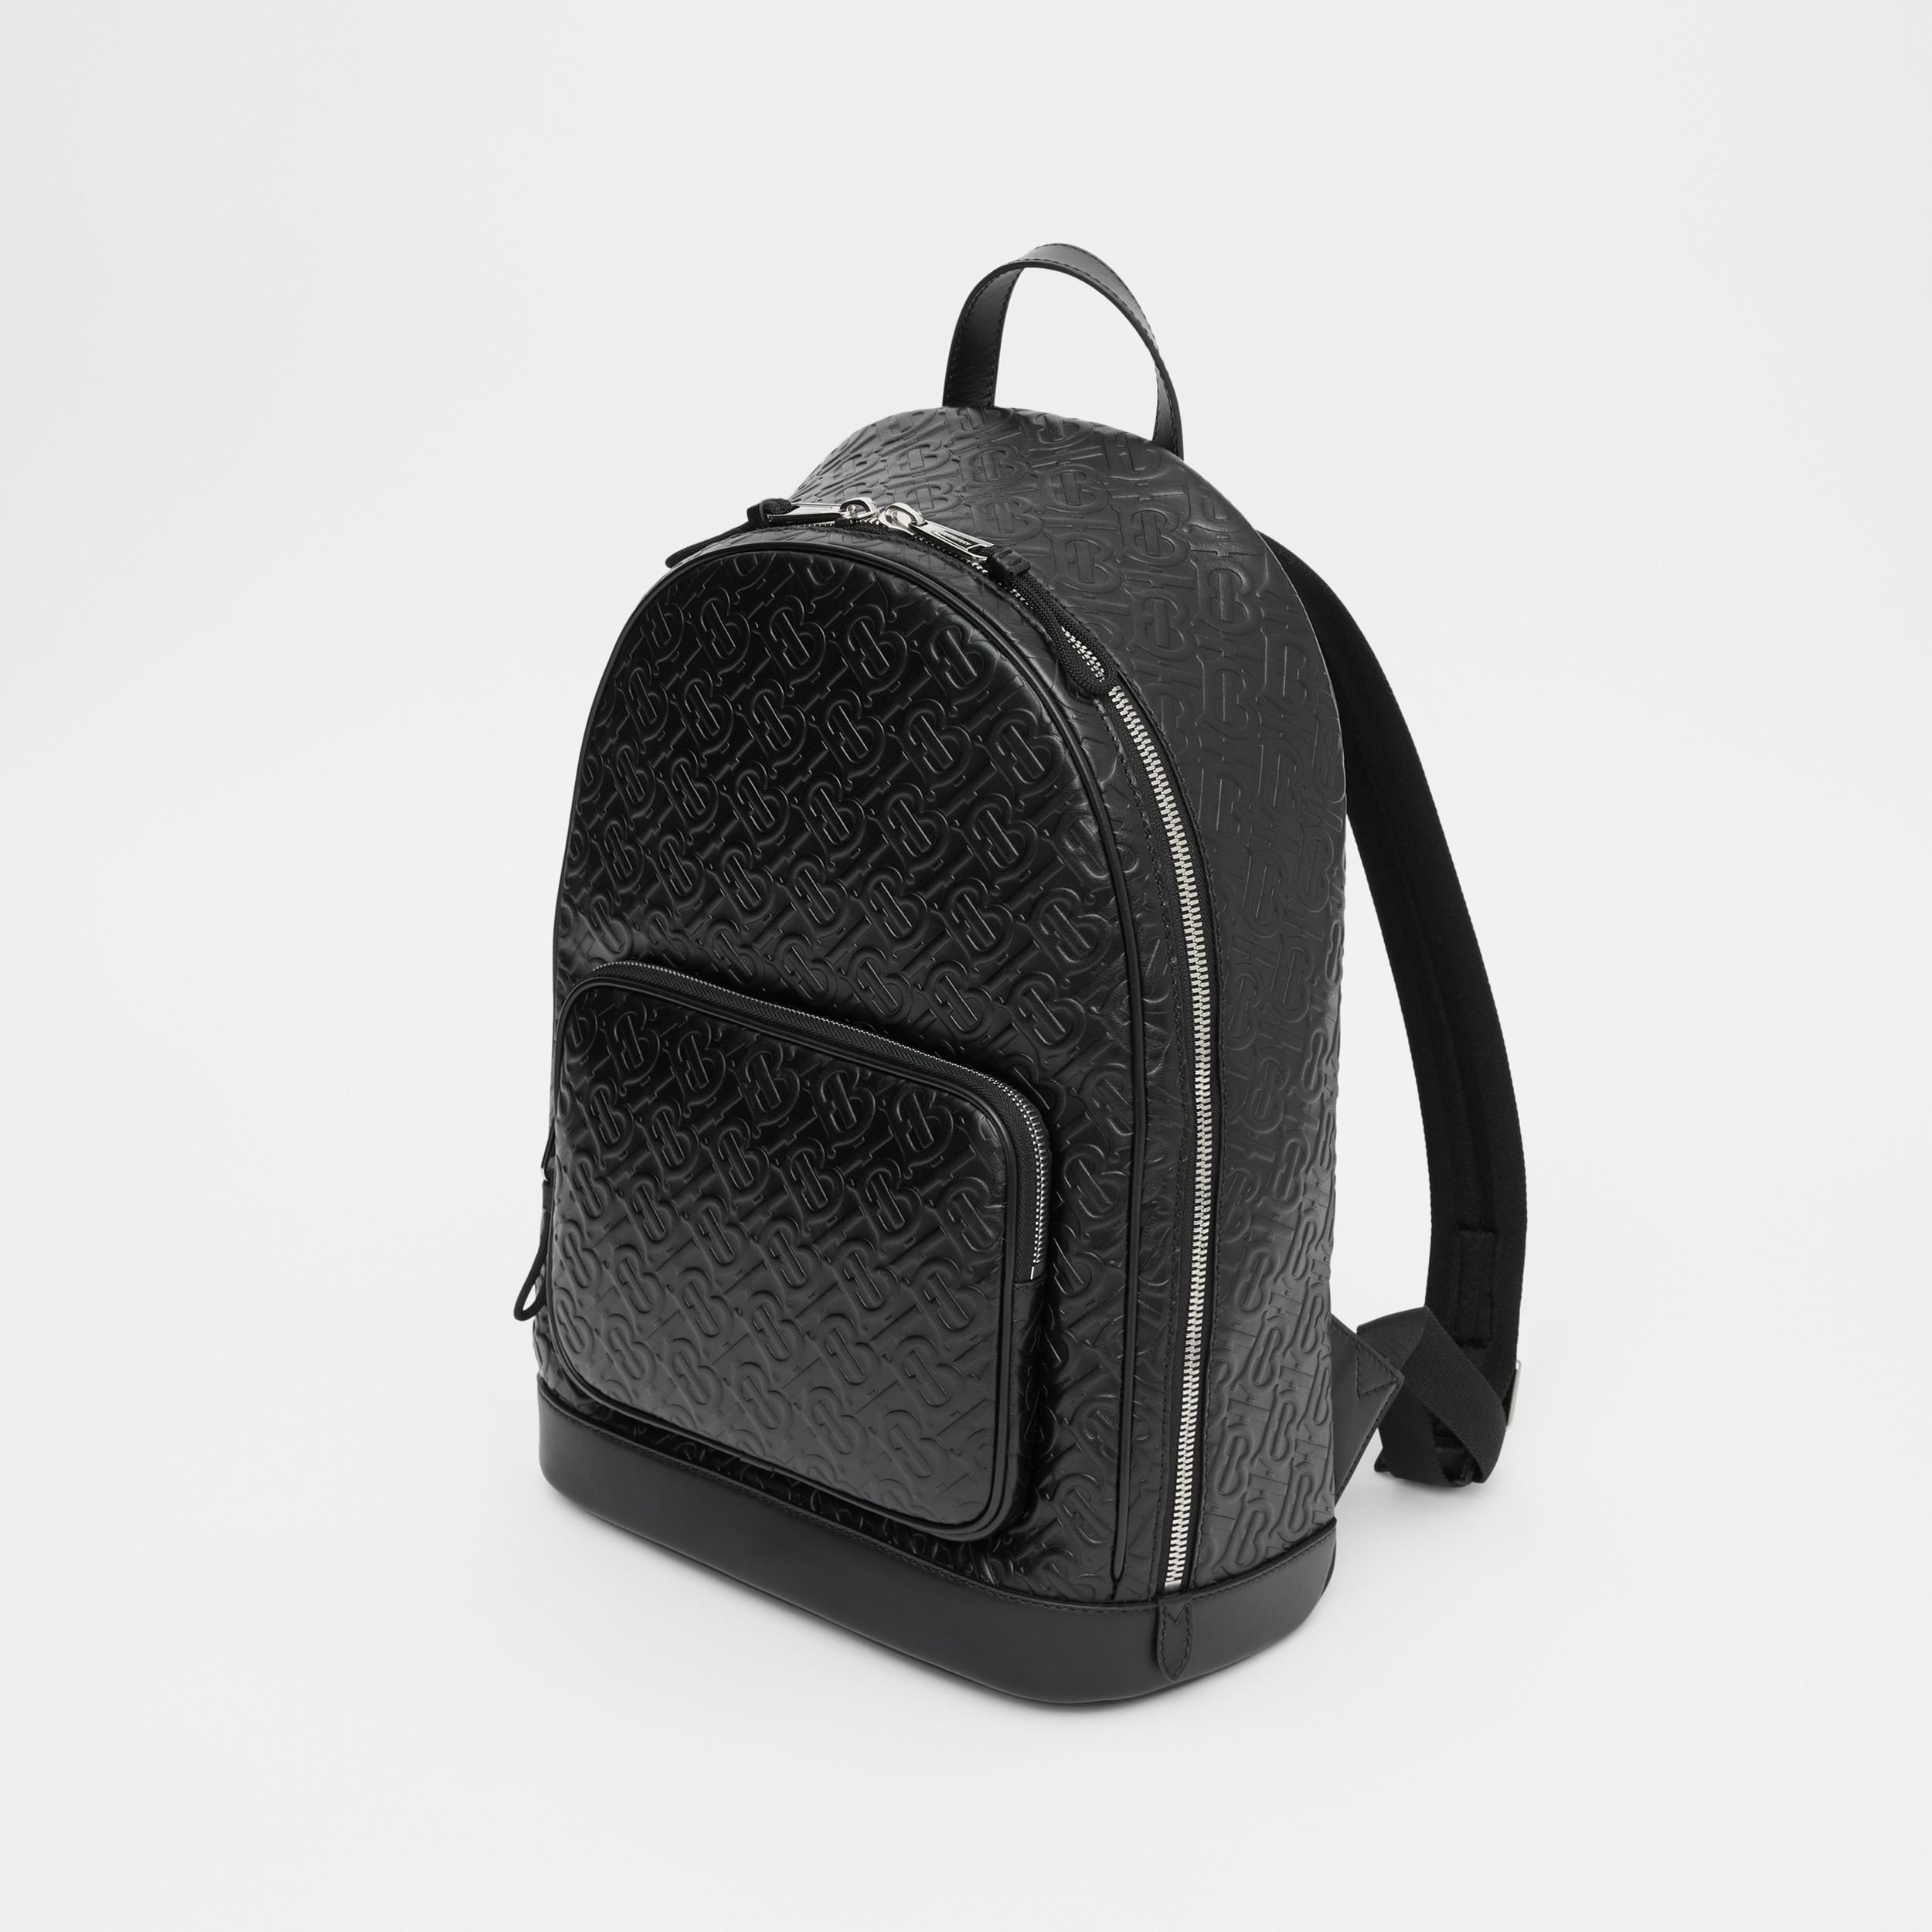 Monogram Leather Backpack in Black - Men | Burberry Canada - 4